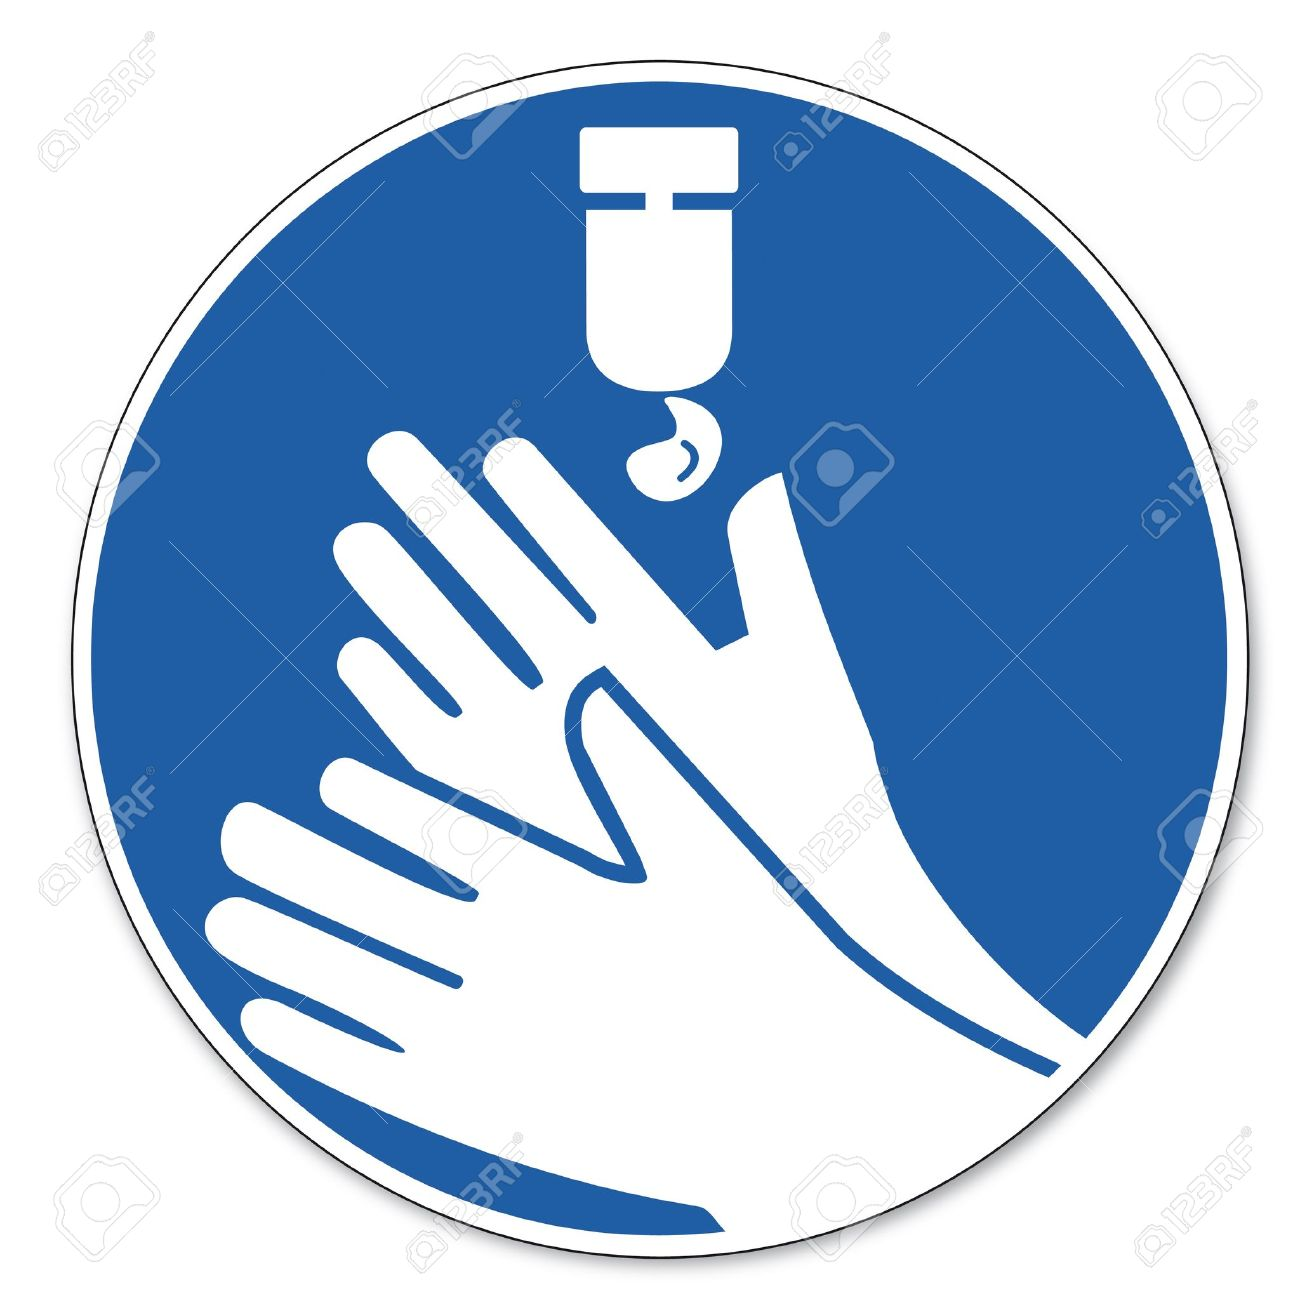 Commanded sign safety sign pictogram occupational safety sign Disinfect your hands do not forget Stock Vector - 14650405